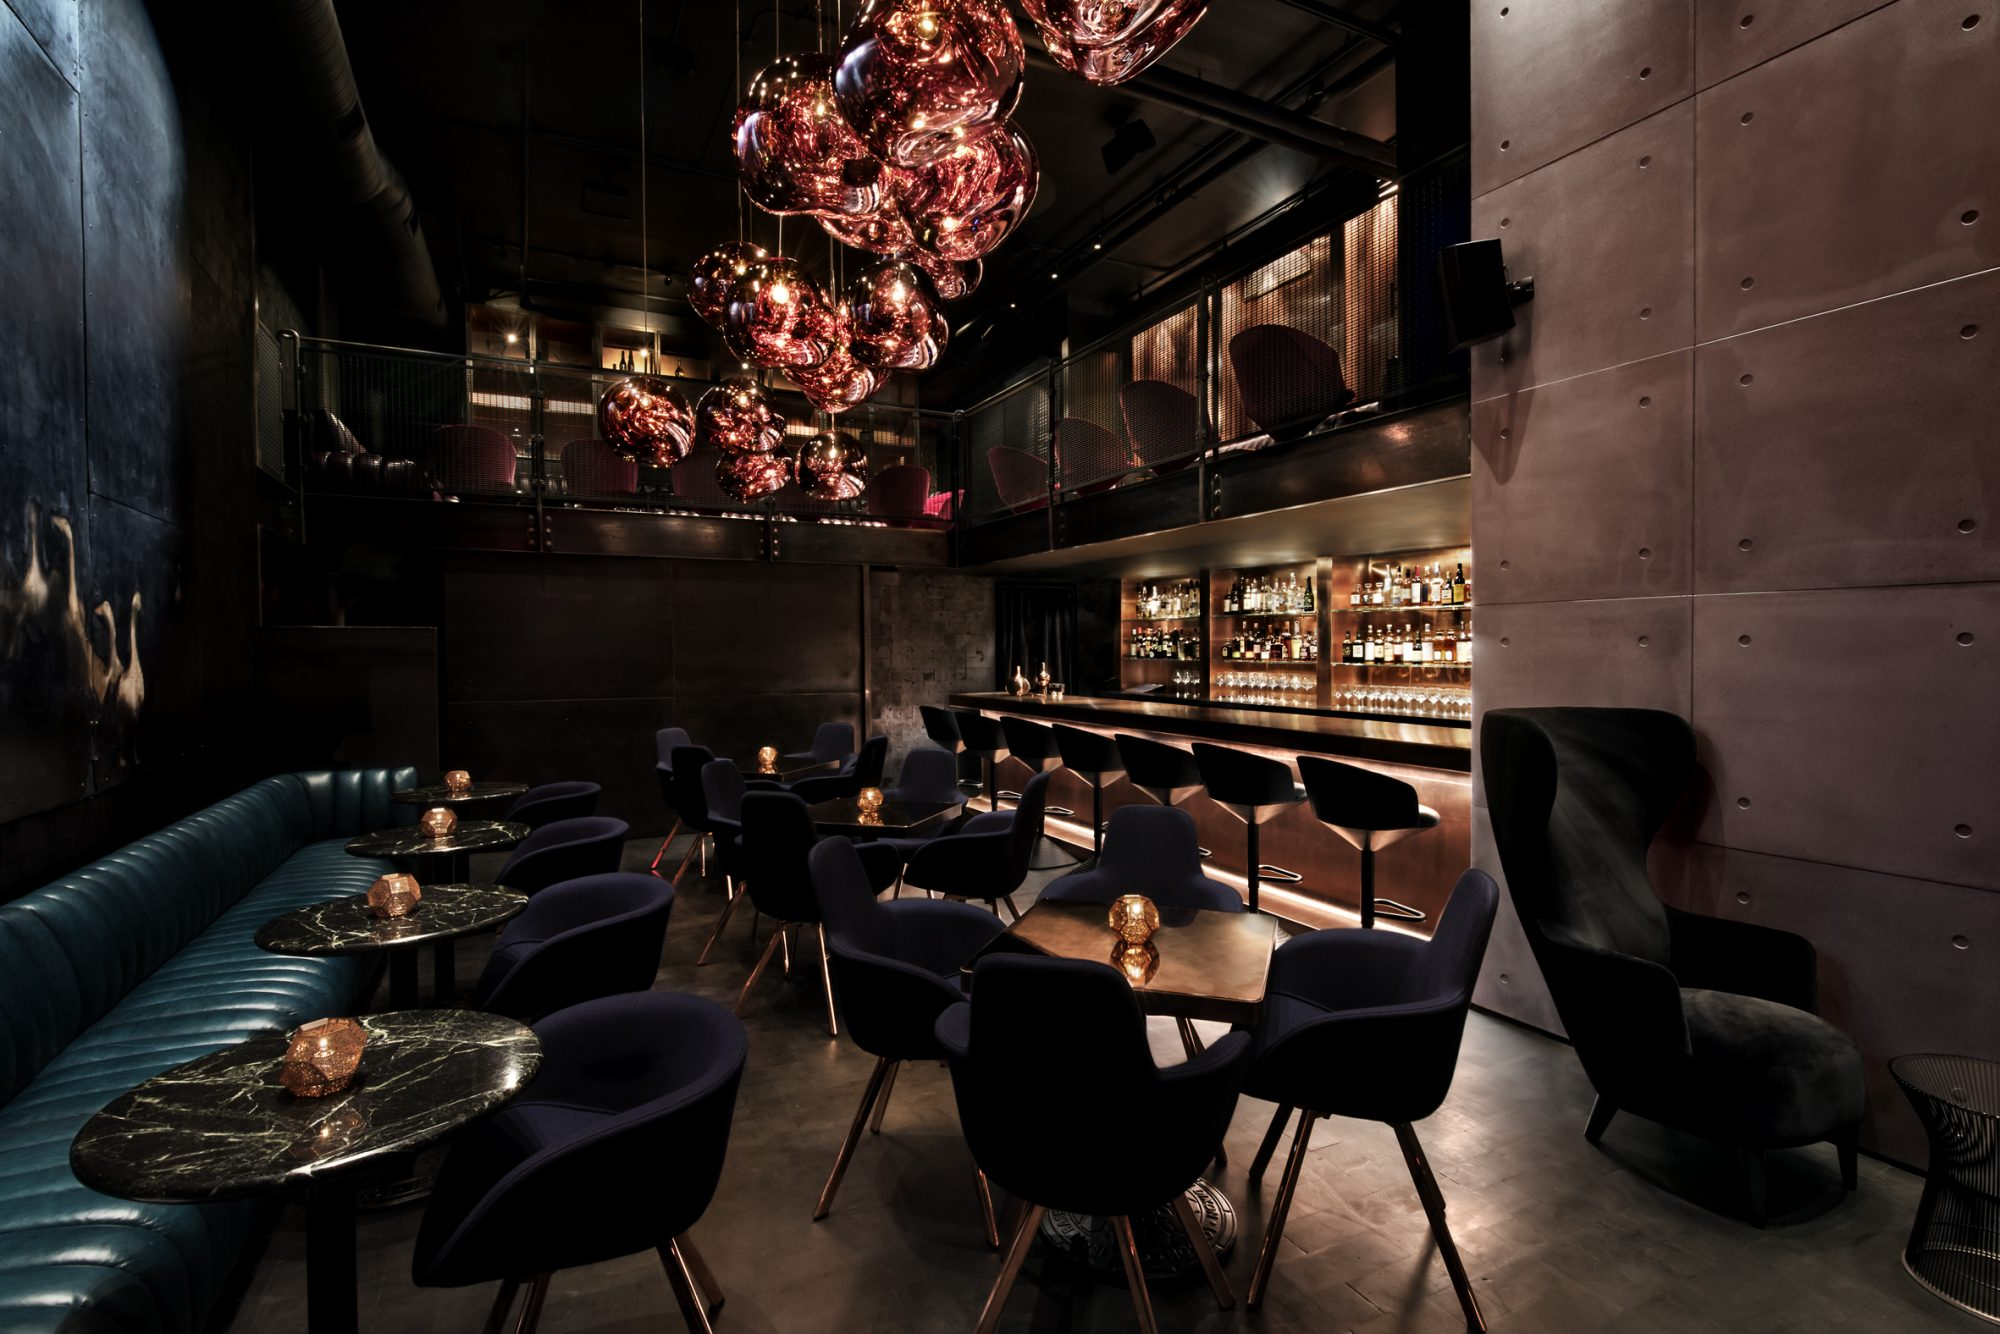 brass-restaurant-design-trend-tom-dixon-himitsu-atlanta-interior.jpg